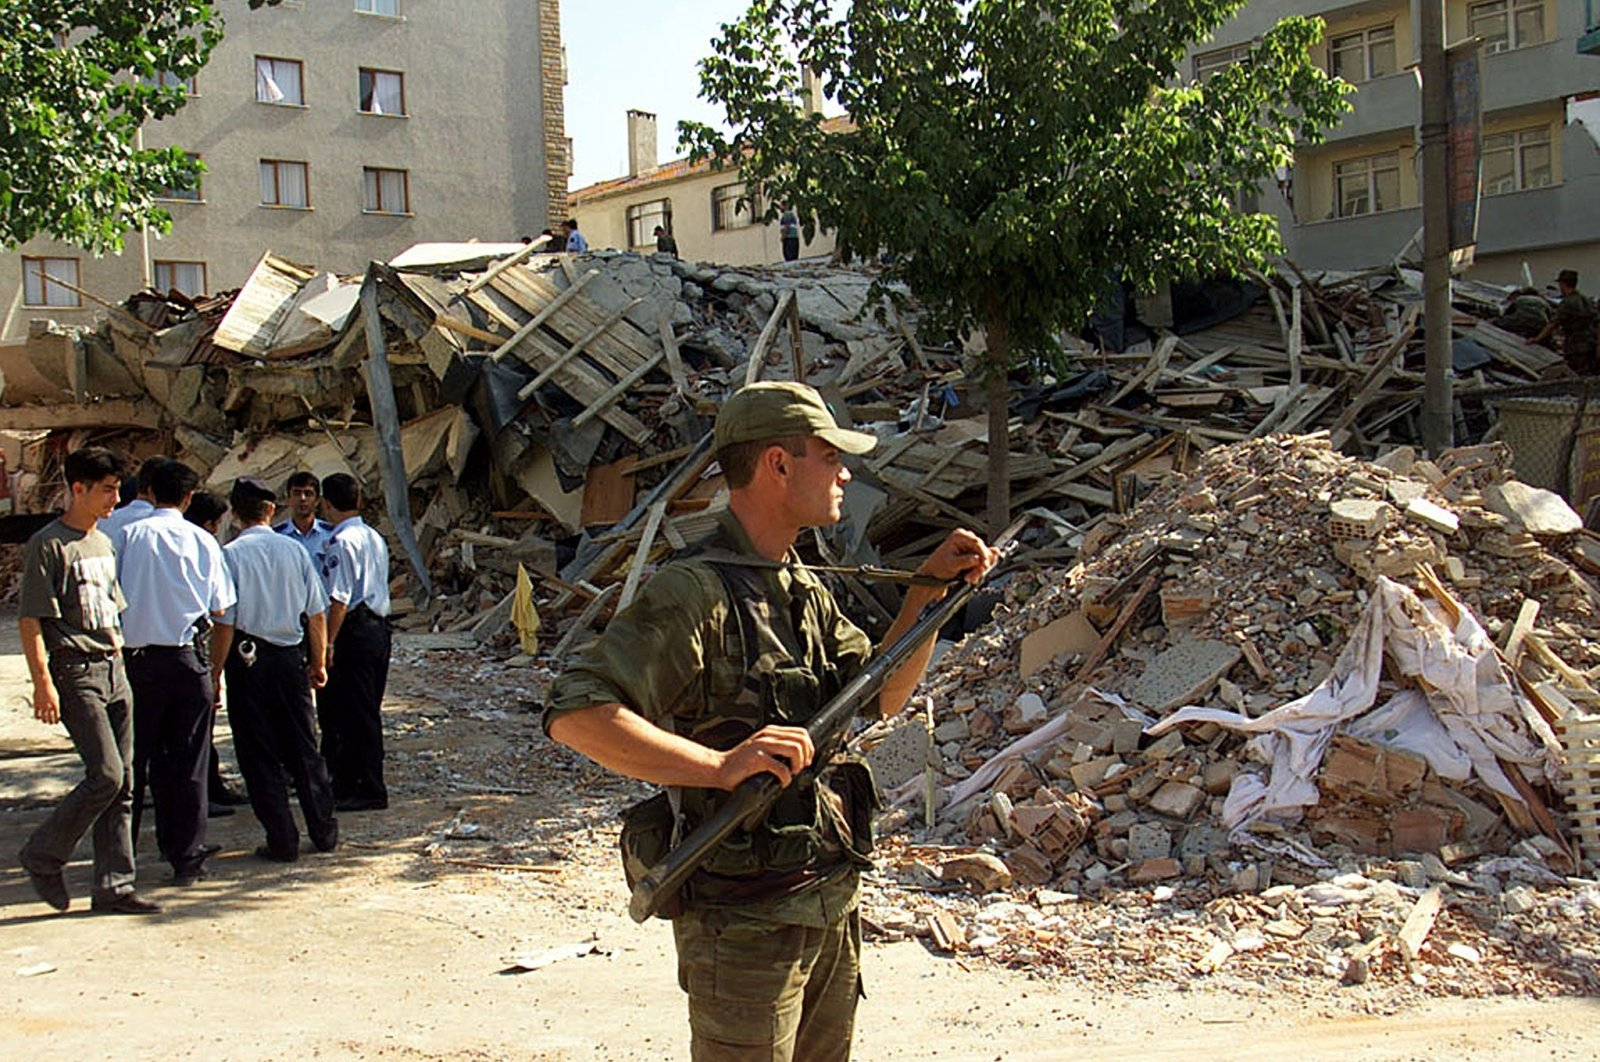 Turkish gendarme stands guard in front of rubble after an earthquake in the Avcılar district in Istanbul, Turkey, Aug. 18, 1999. (REUTERS Photo)